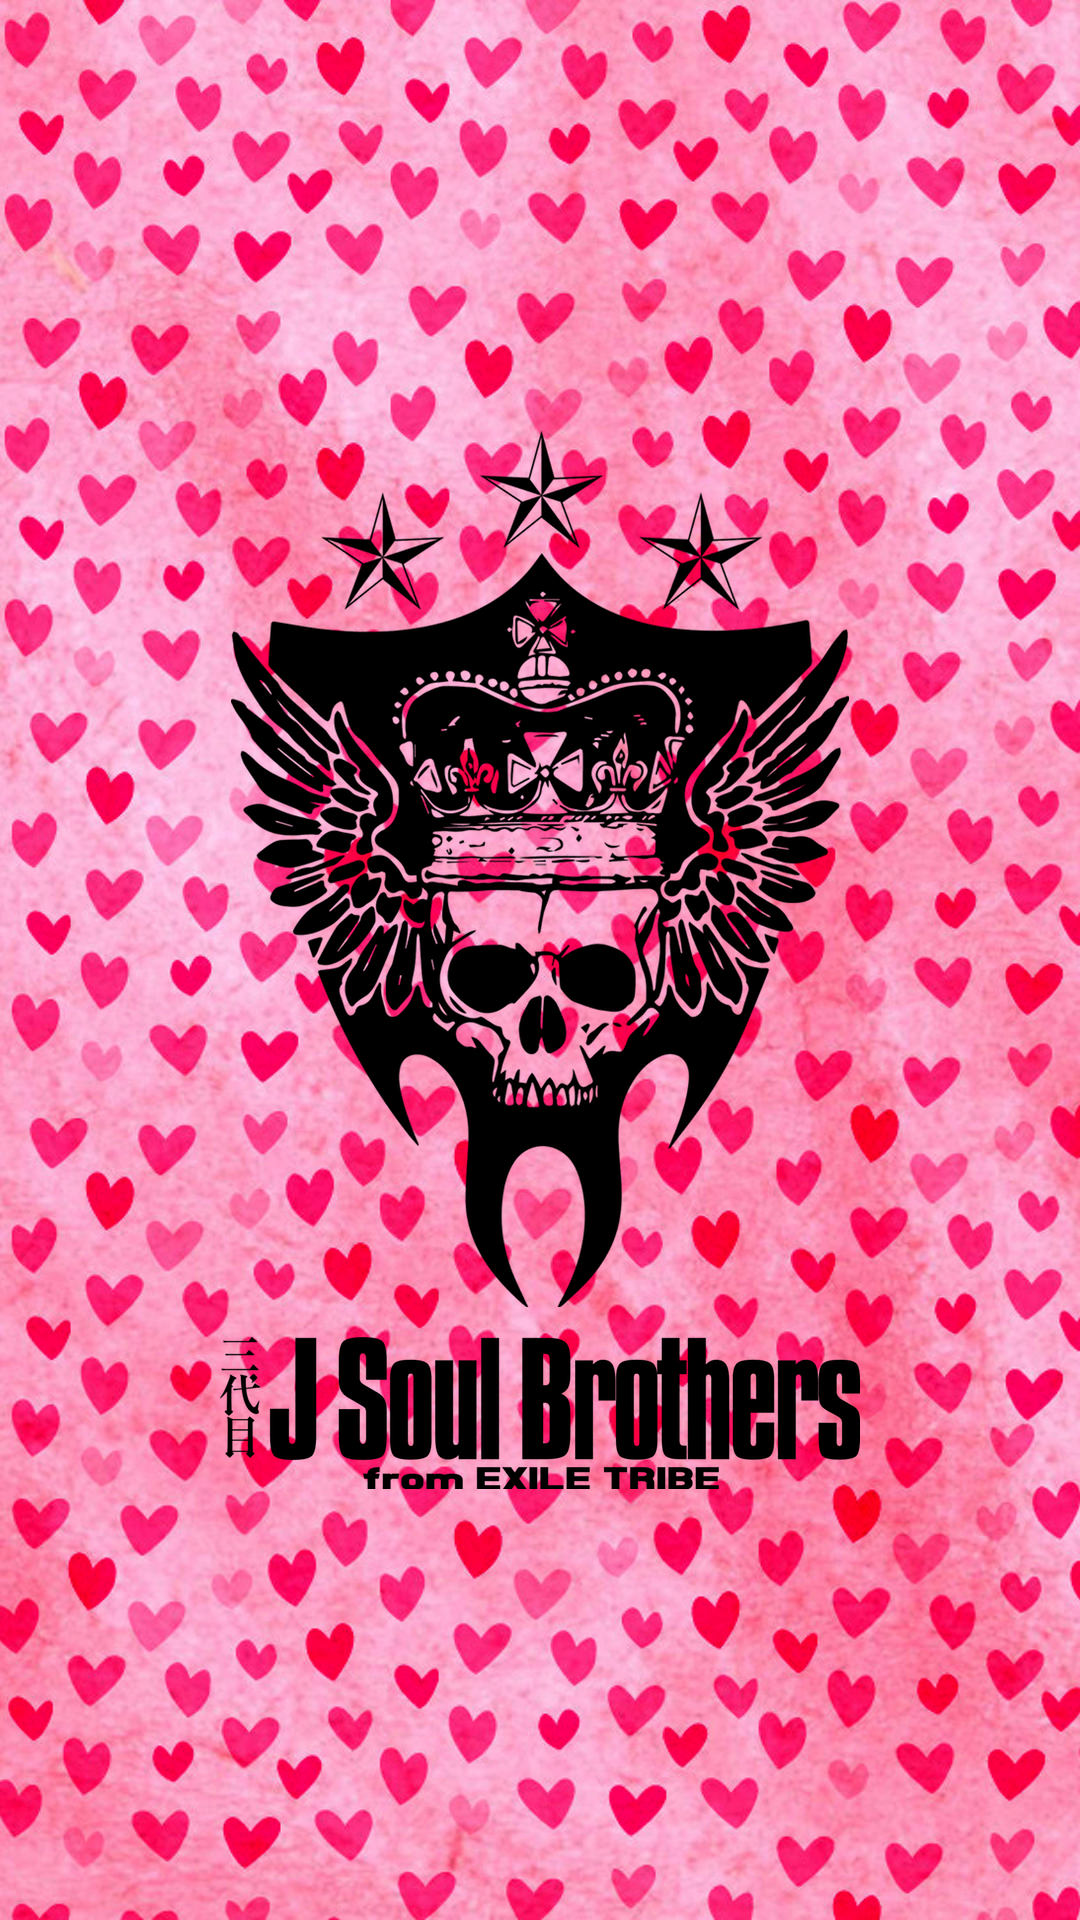 3jsb i24 - 三代目 J SOUL BROTHERSの高画質スマホ壁紙40枚 [iPhone&Androidに対応]